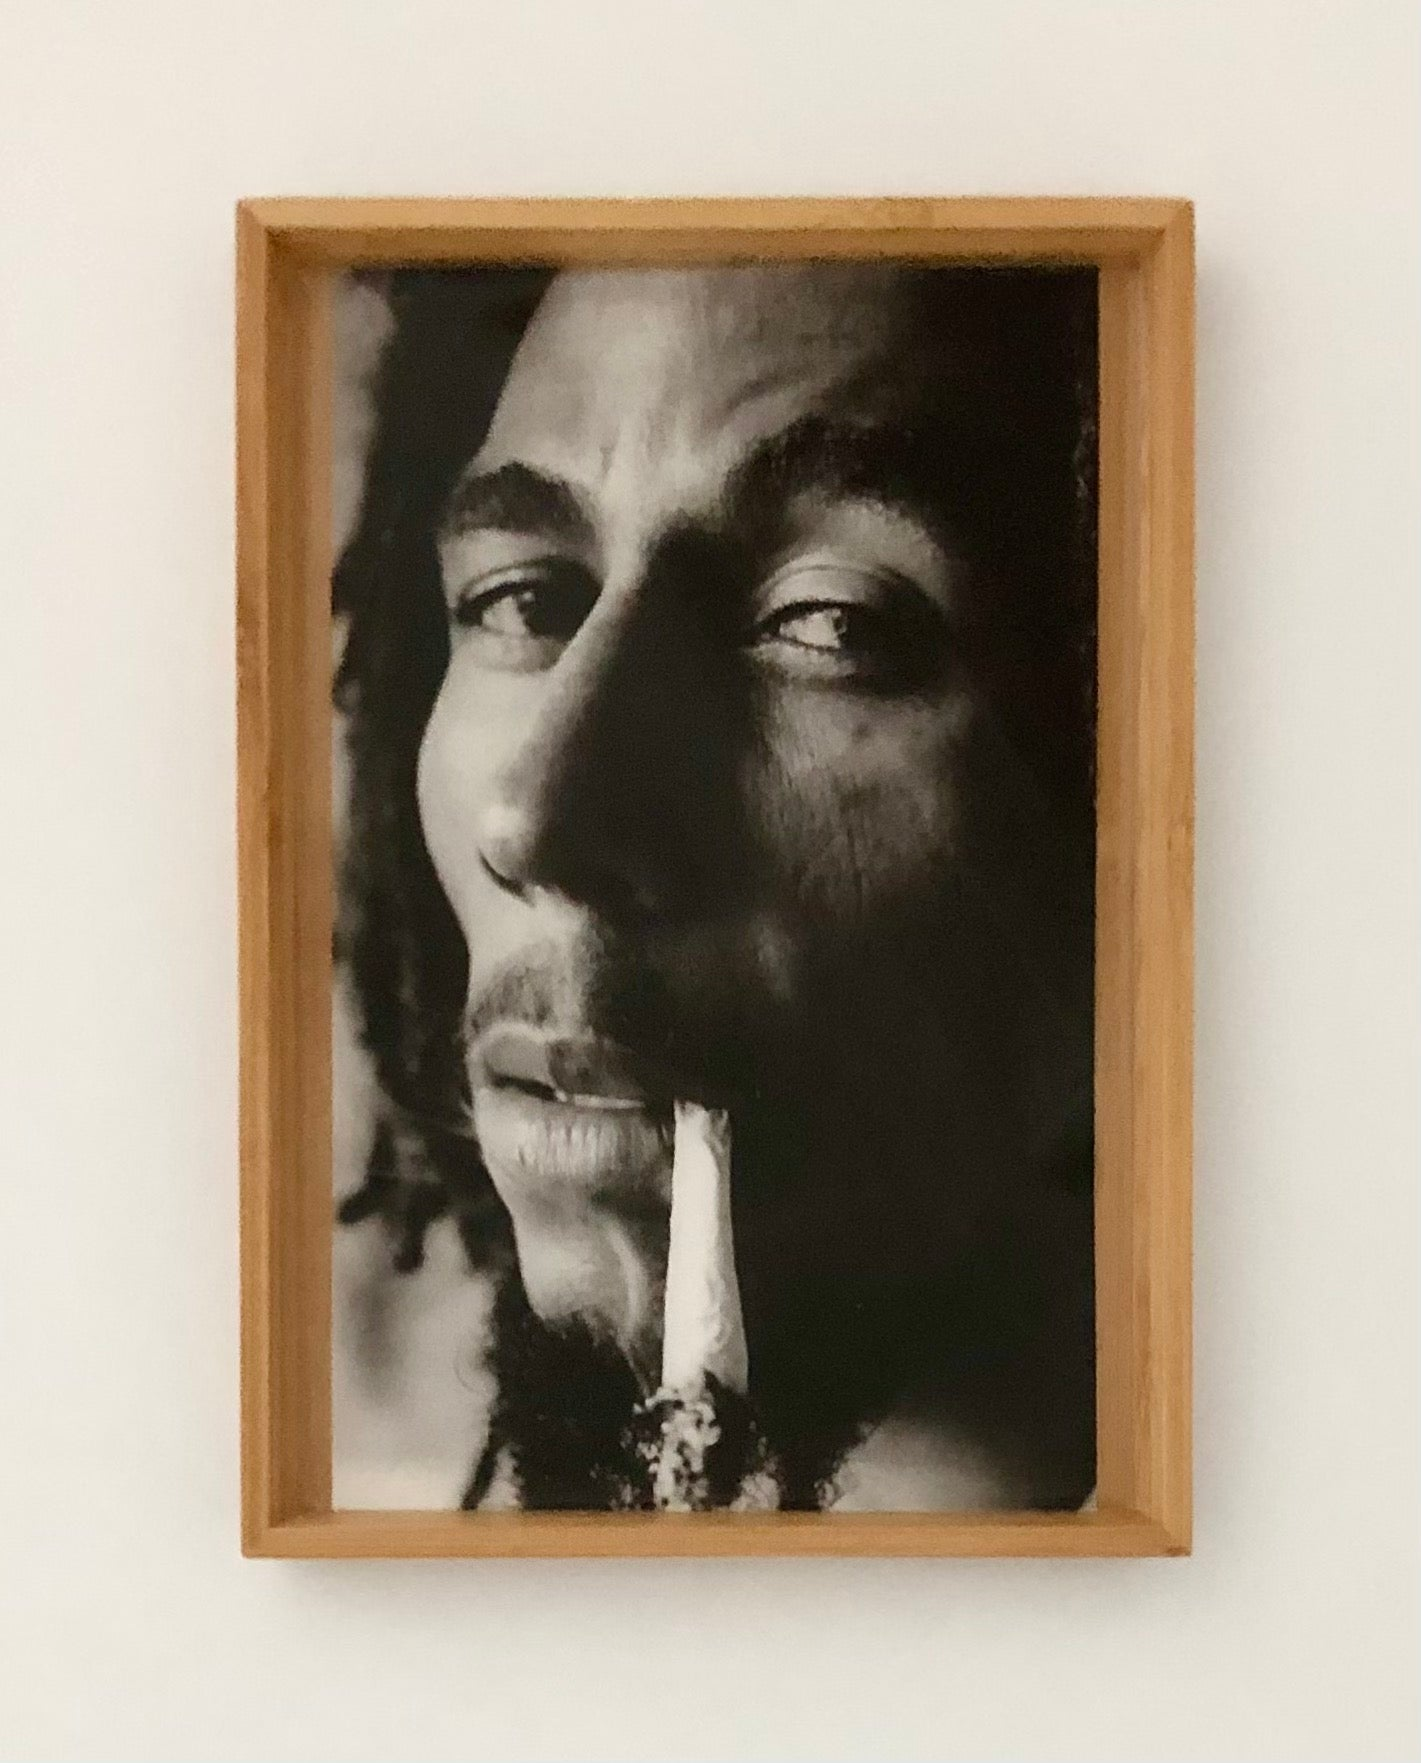 BOB MARLEY - smokin' one